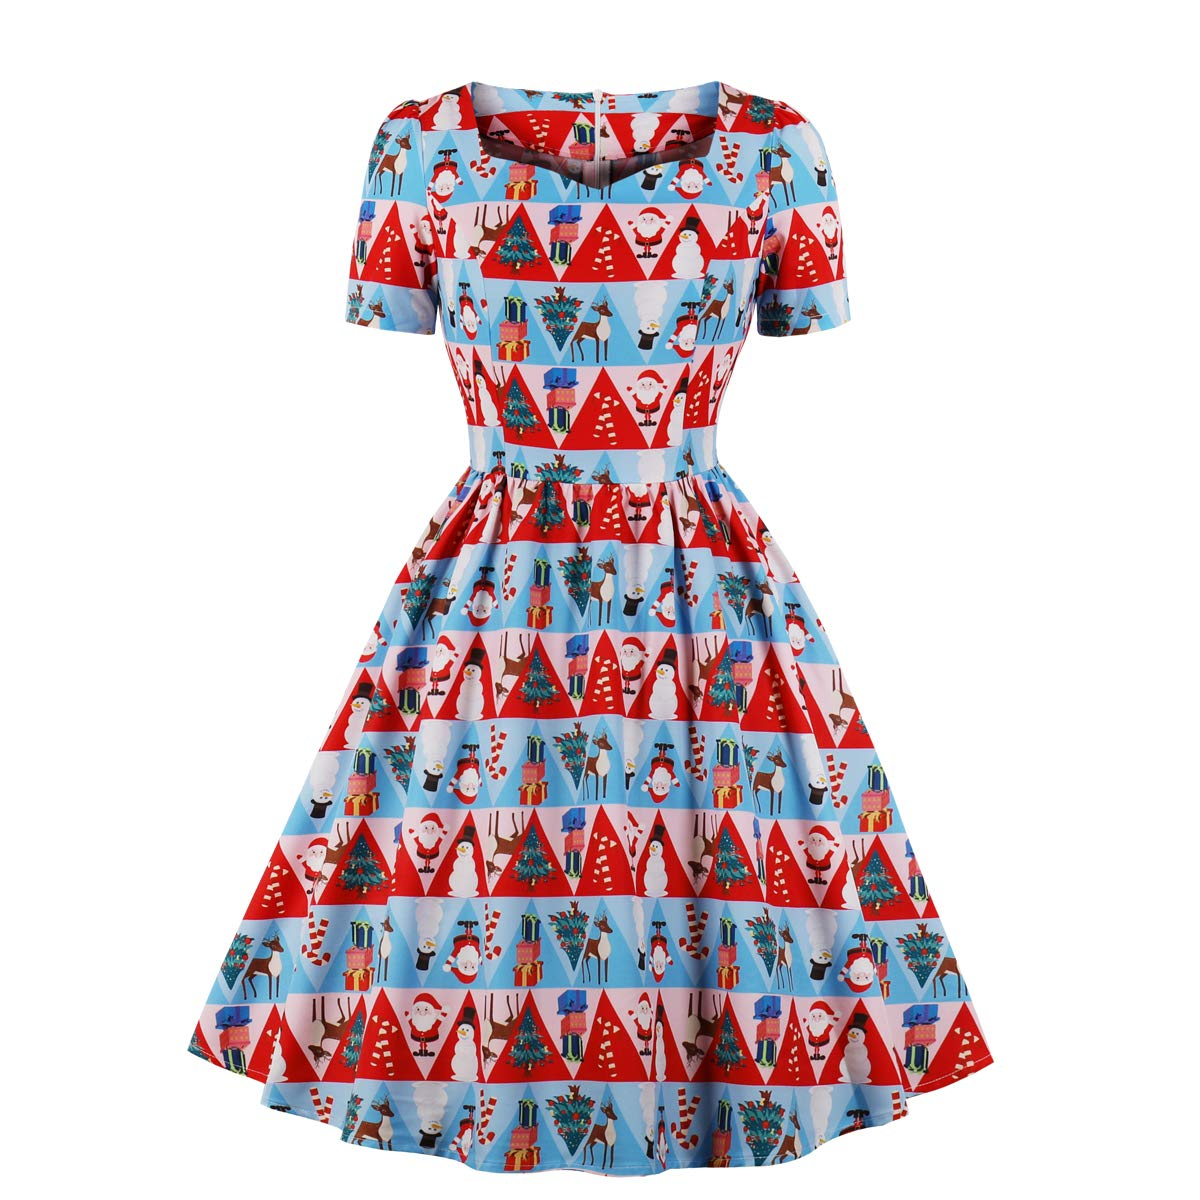 Vintage Christmas Gift Ideas for Women Wellwits Womens Triangle Fancy Pattern Print Tea Length 1950s Vintage Dress $22.98 AT vintagedancer.com